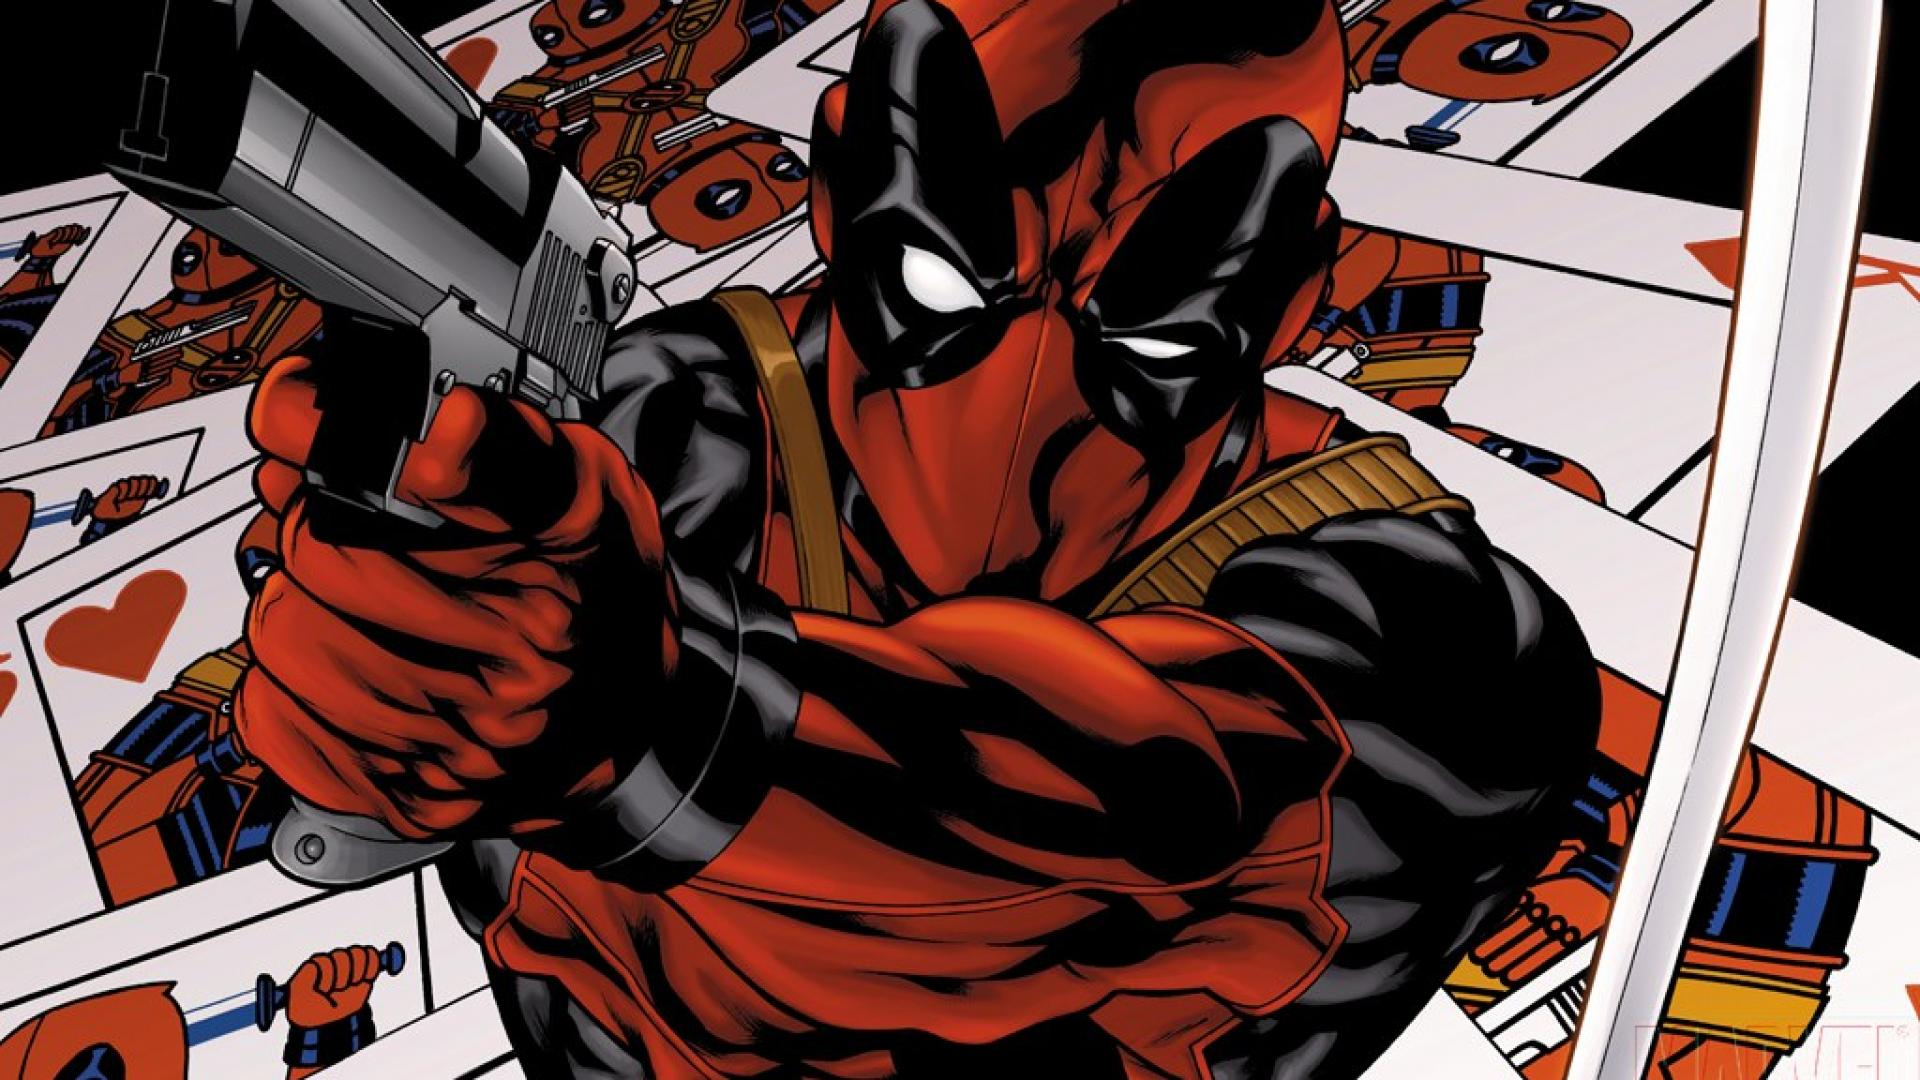 Blindbandit92 Tamar20 Images Deadpool Hd Wallpaper And Background